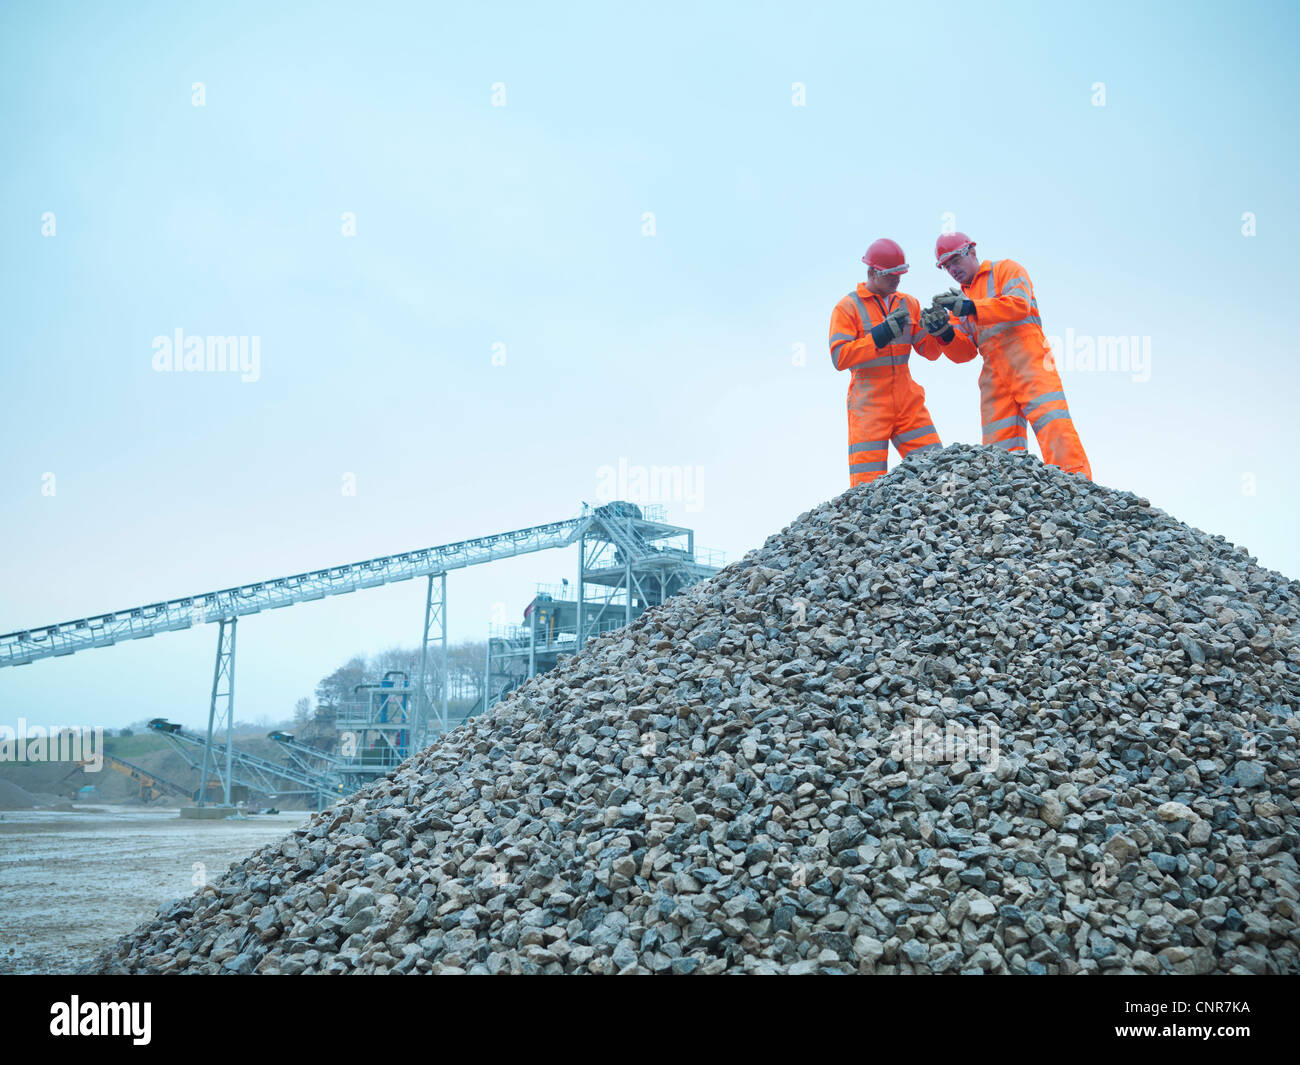 Workers inspecting quarry rocks - Stock Image